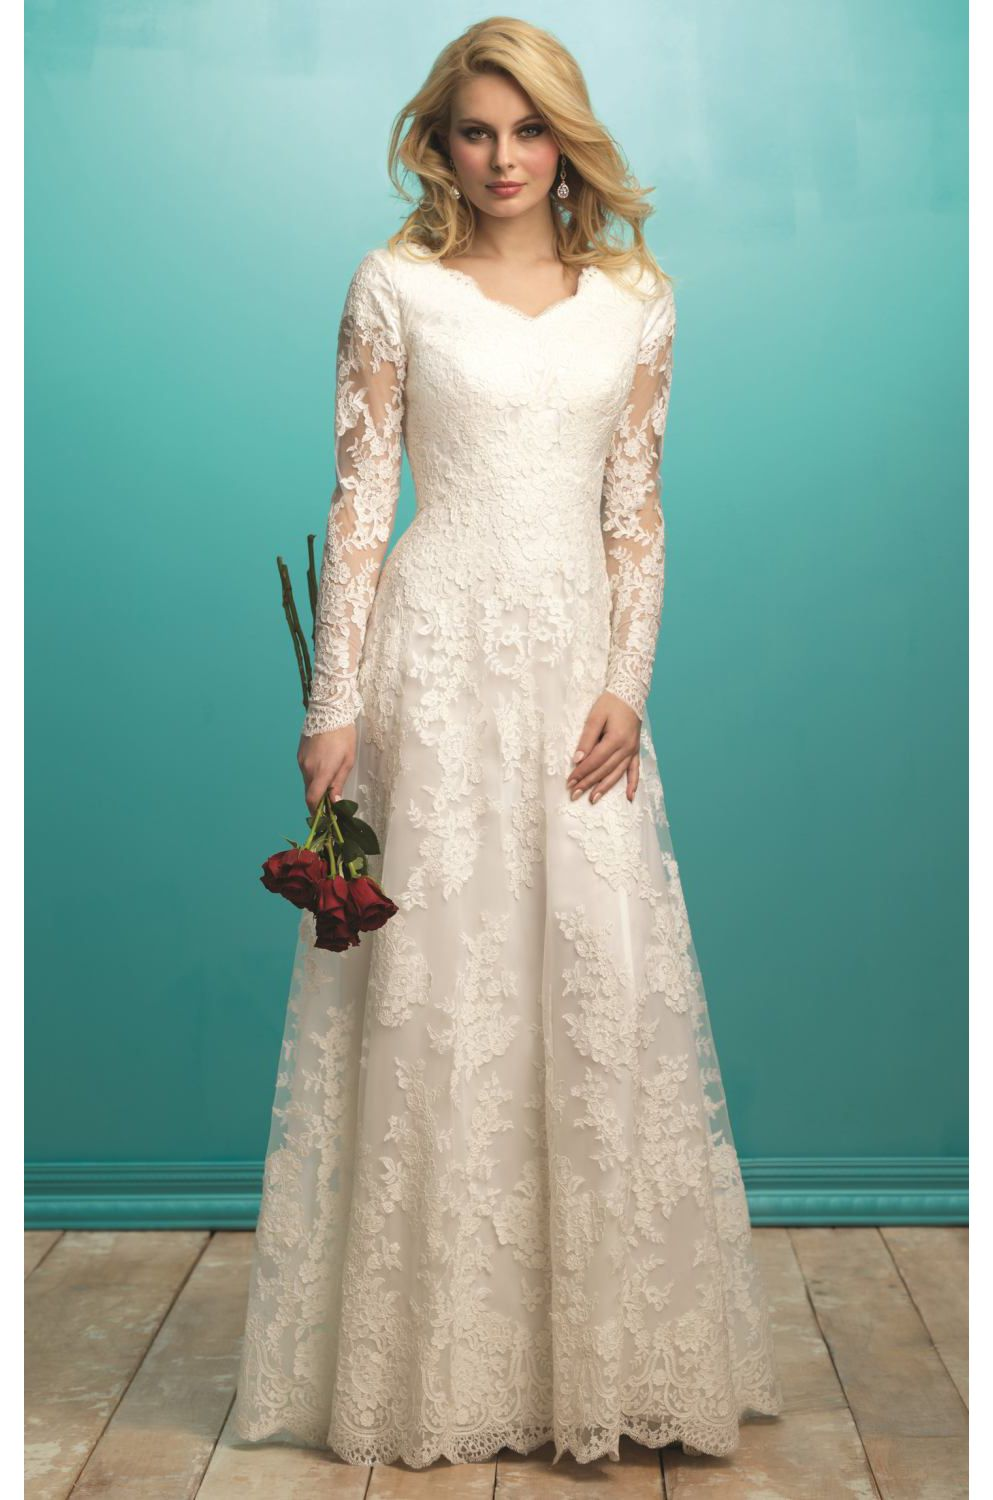 Lace Full Sleeved Gown www.findress.com | Wedding dress | Pinterest ...